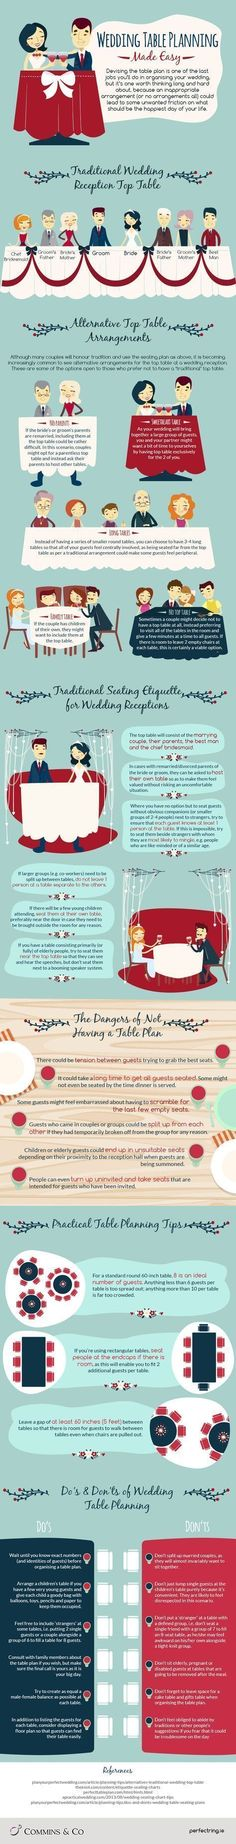 This cool infographic answers every question you have about planning your wedding table seating arrangements. #weddingplanninginfographic #weddingideas